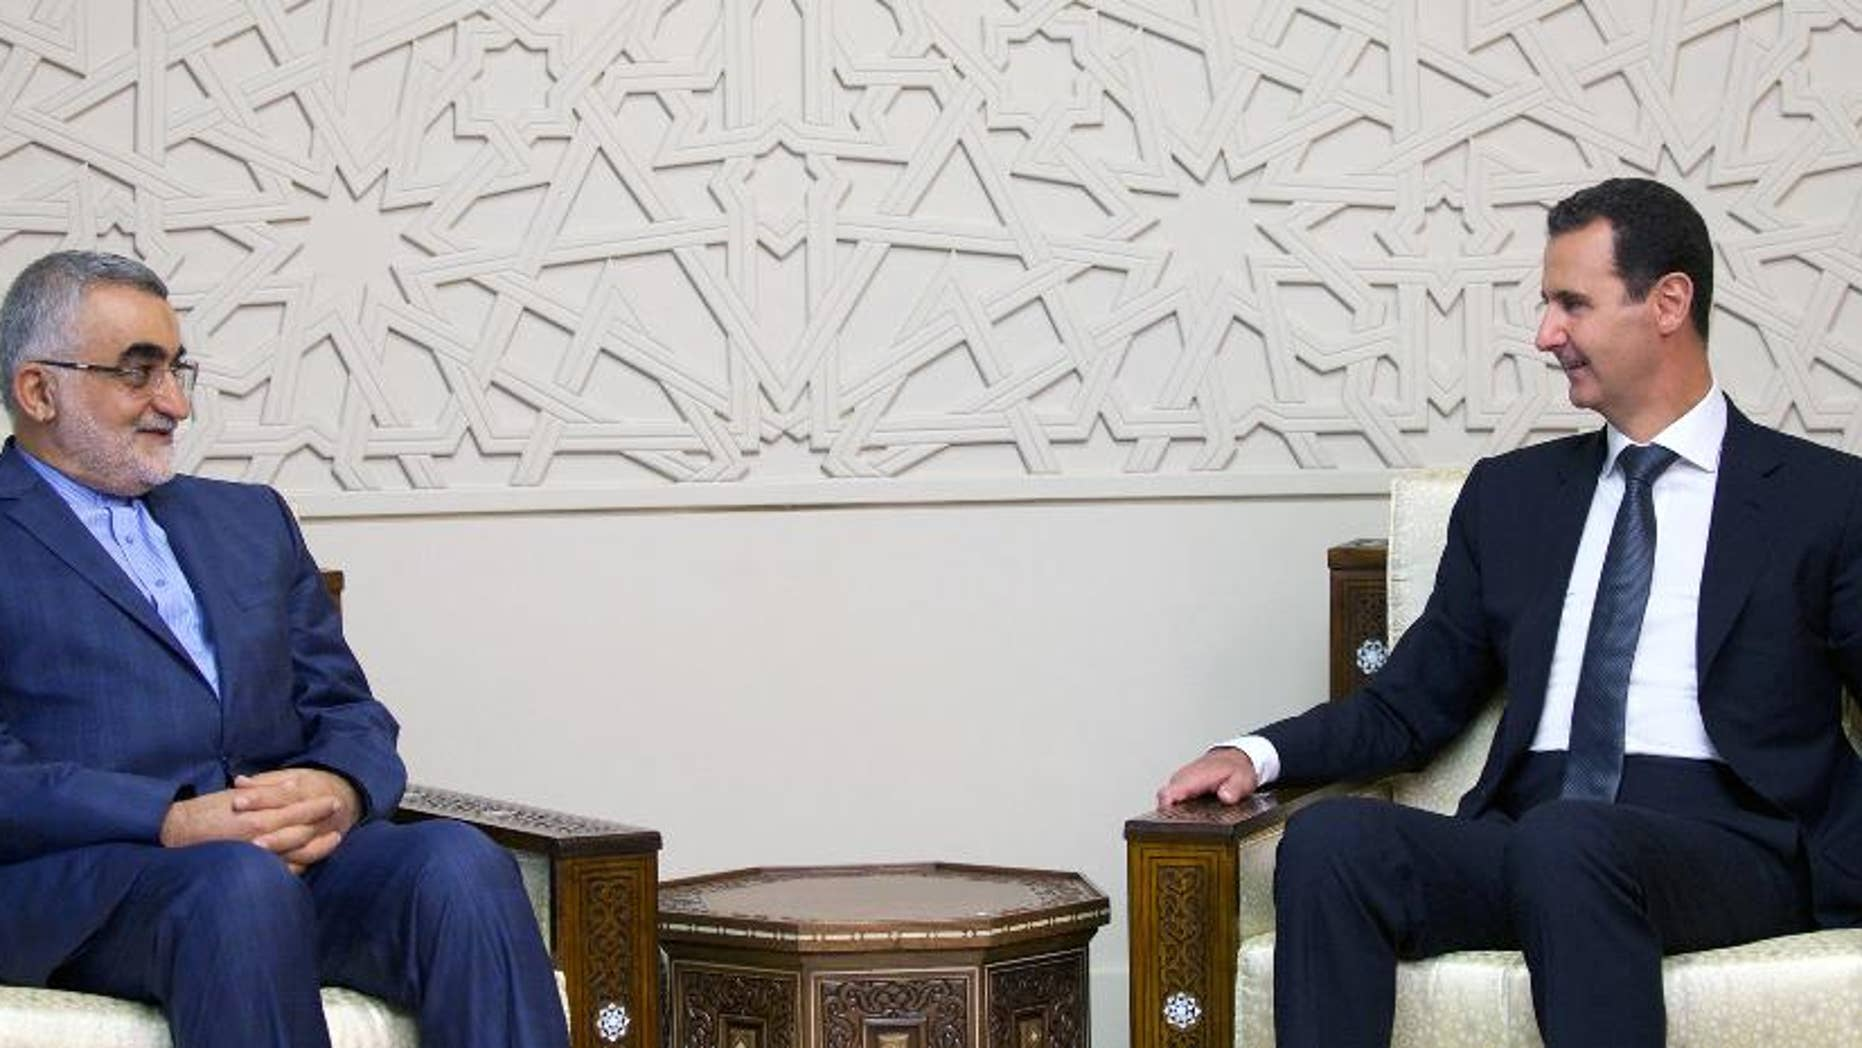 """In this photo released by the Syrian official news agency SANA, Syrian President Bashar Assad, right, meets with Alaeddin Boroujerdi, Chairman of the Committee for Foreign Policy and National Security at the Iranian Shura Council, in Damascus, Syria, Thursday, Aug 4, 2016. Boroujerdi said operation by the Syrian government and allied forces in Aleppo aims to """"liberate"""" tens of thousands of residents from the grip of what he called terrorist groups. (SANA via AP)"""